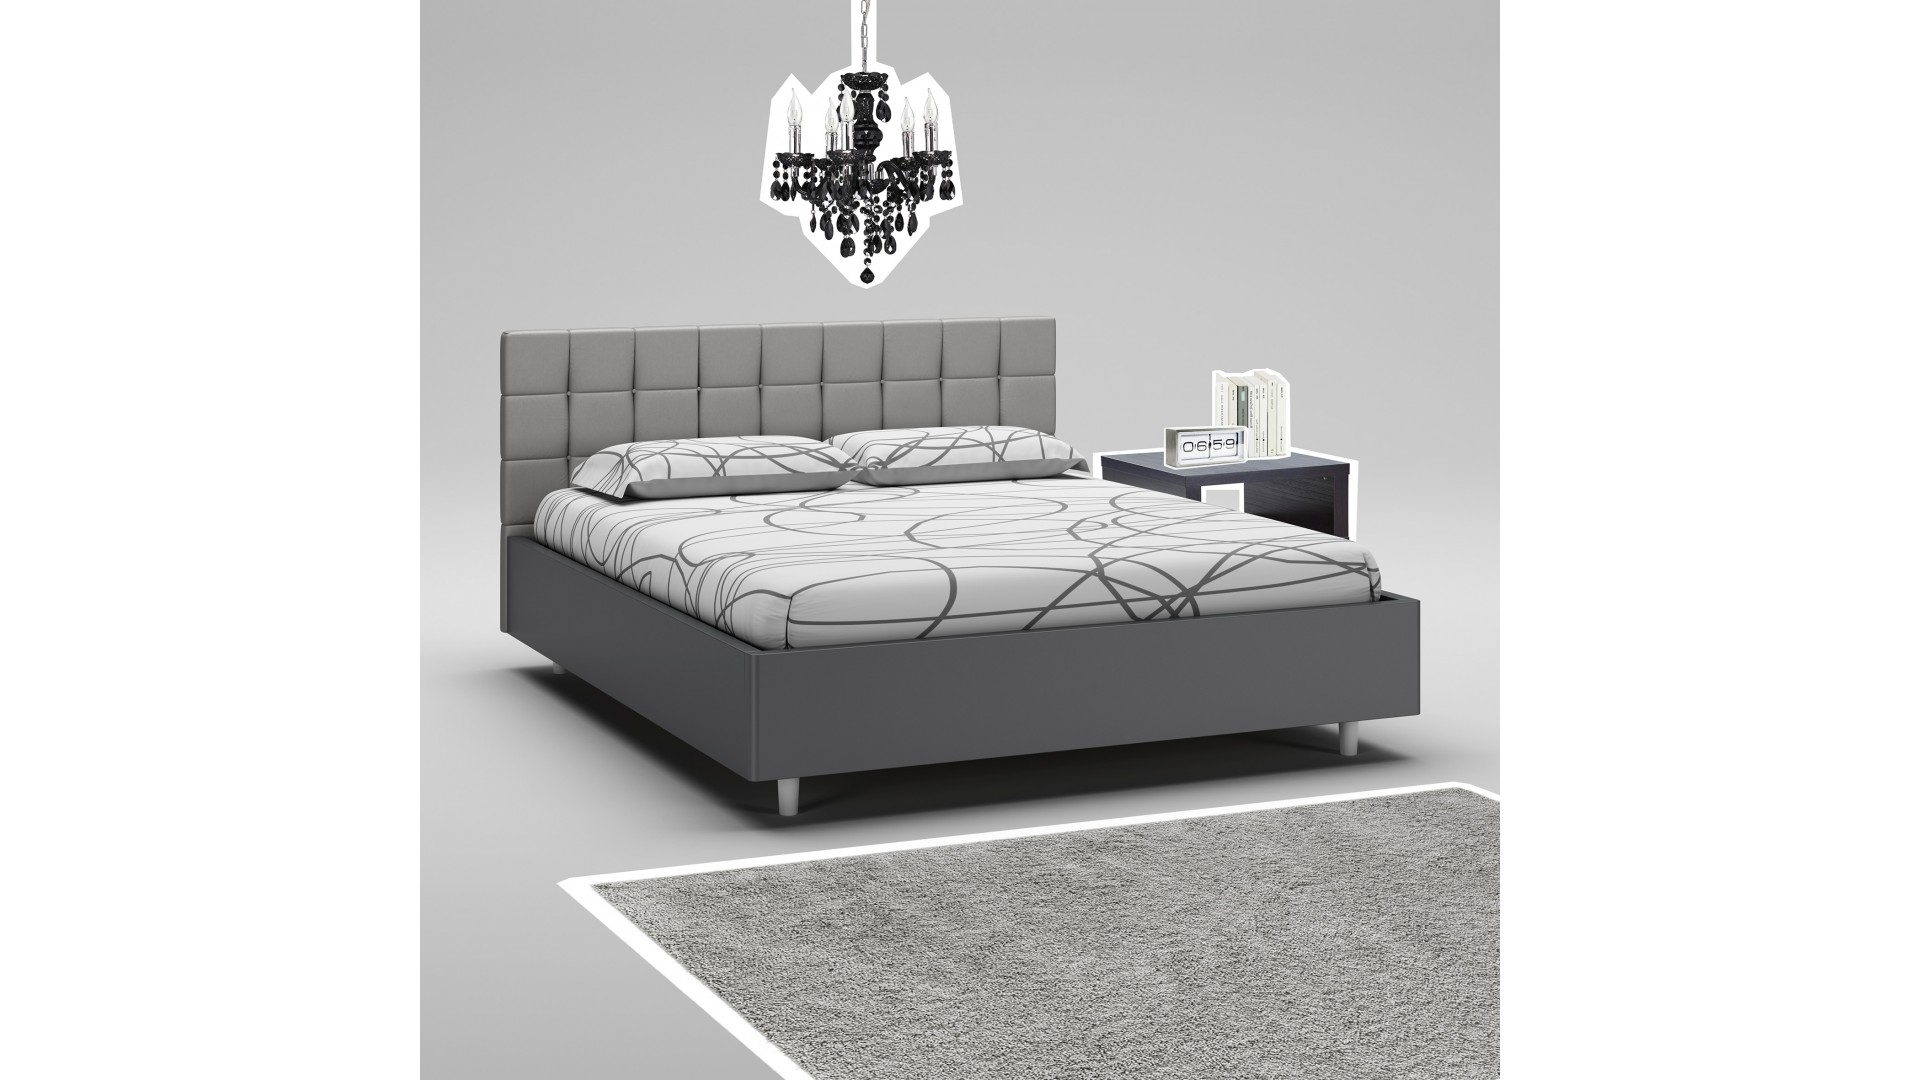 lit 160x200 t te de lit cadre graphite moretti compact so nuit. Black Bedroom Furniture Sets. Home Design Ideas